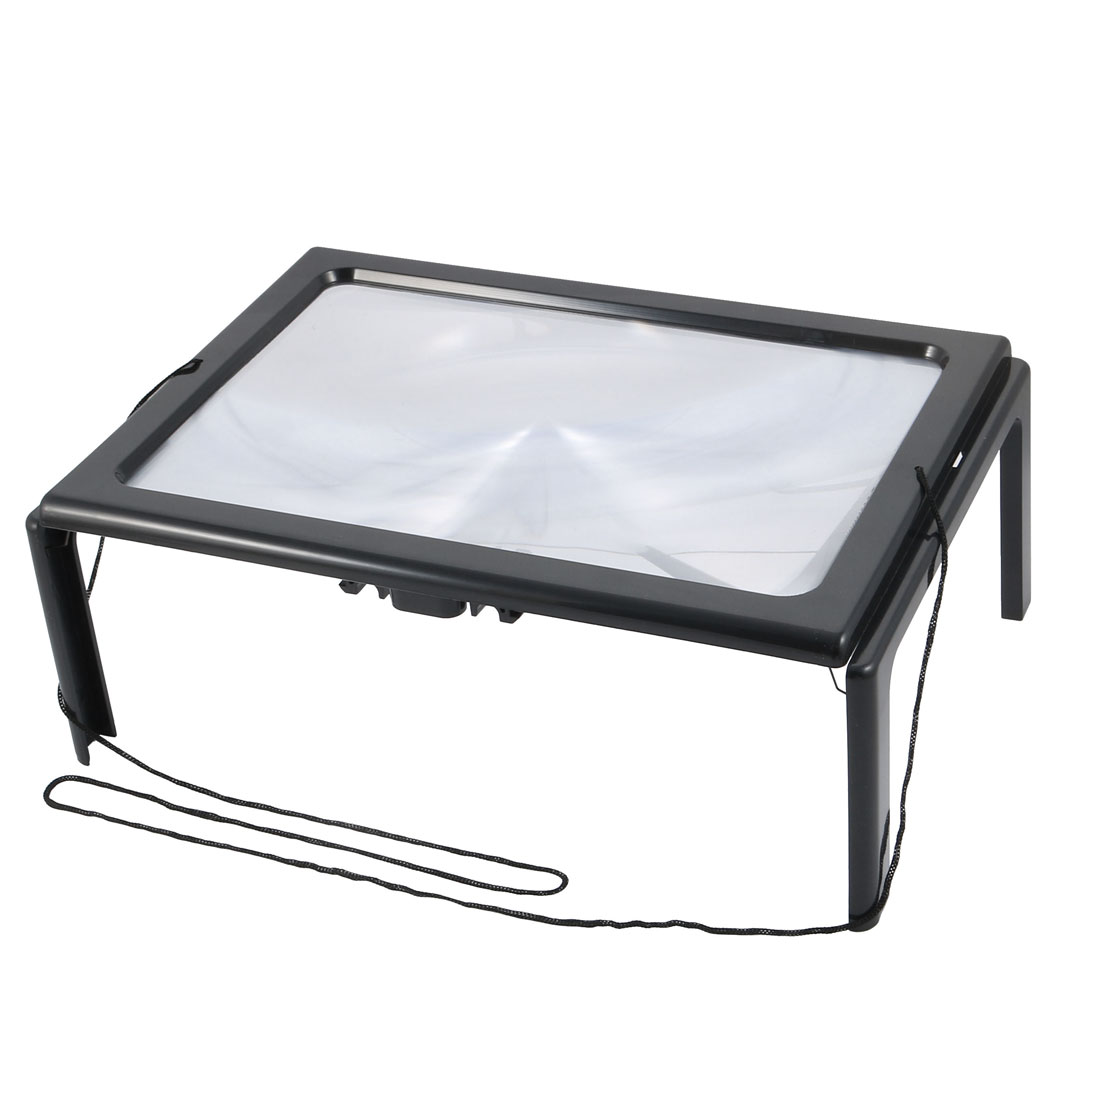 Hands Free Magnifier Illuminated Magnifier Reading Magnifying Glass w  Light